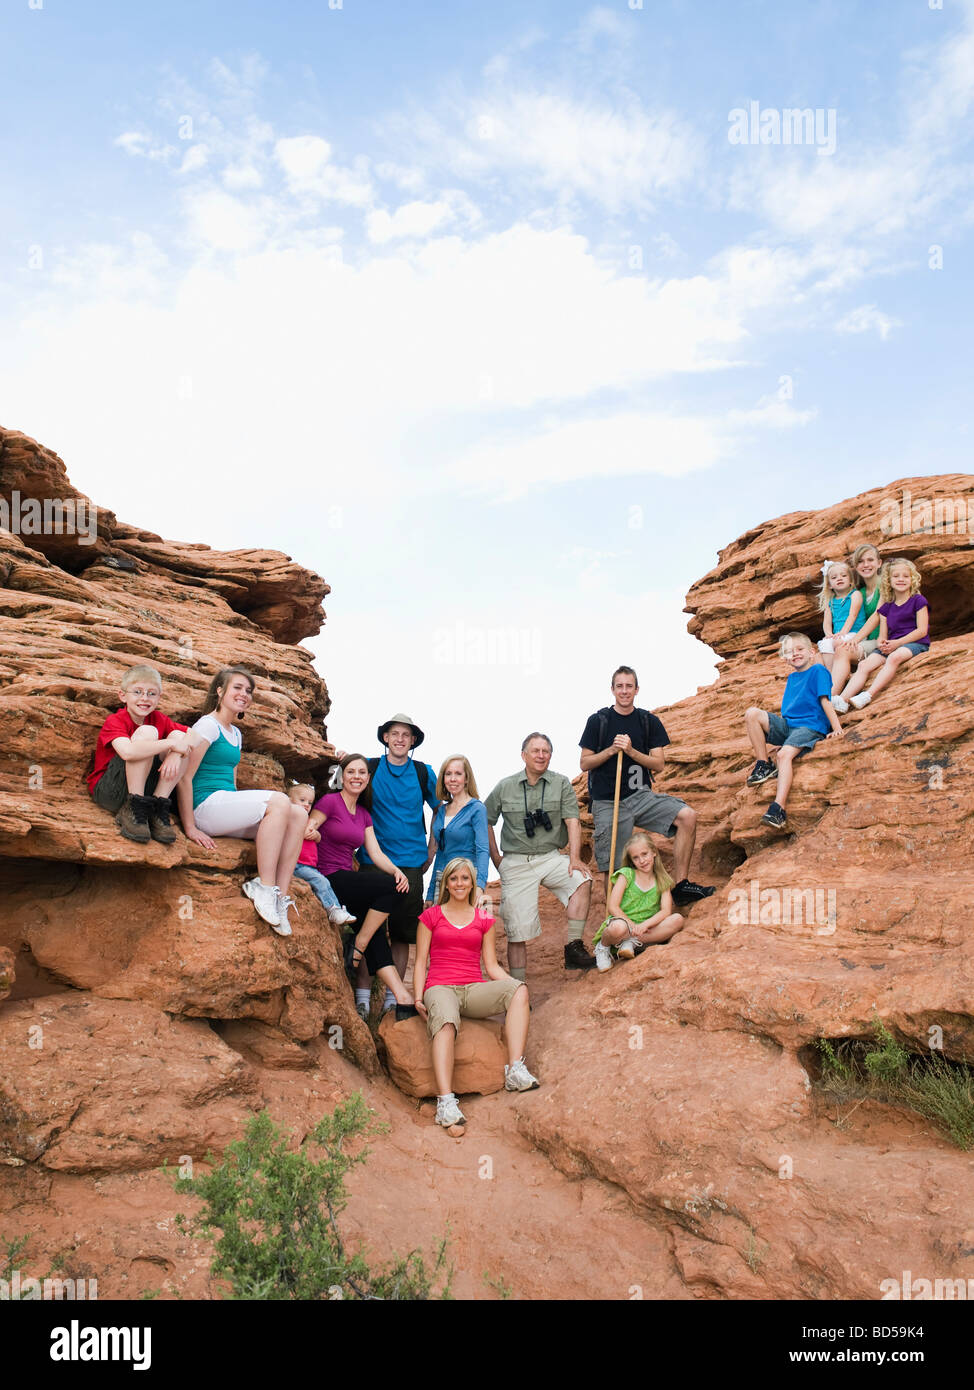 A large family on vacation at Red Rock - Stock Image